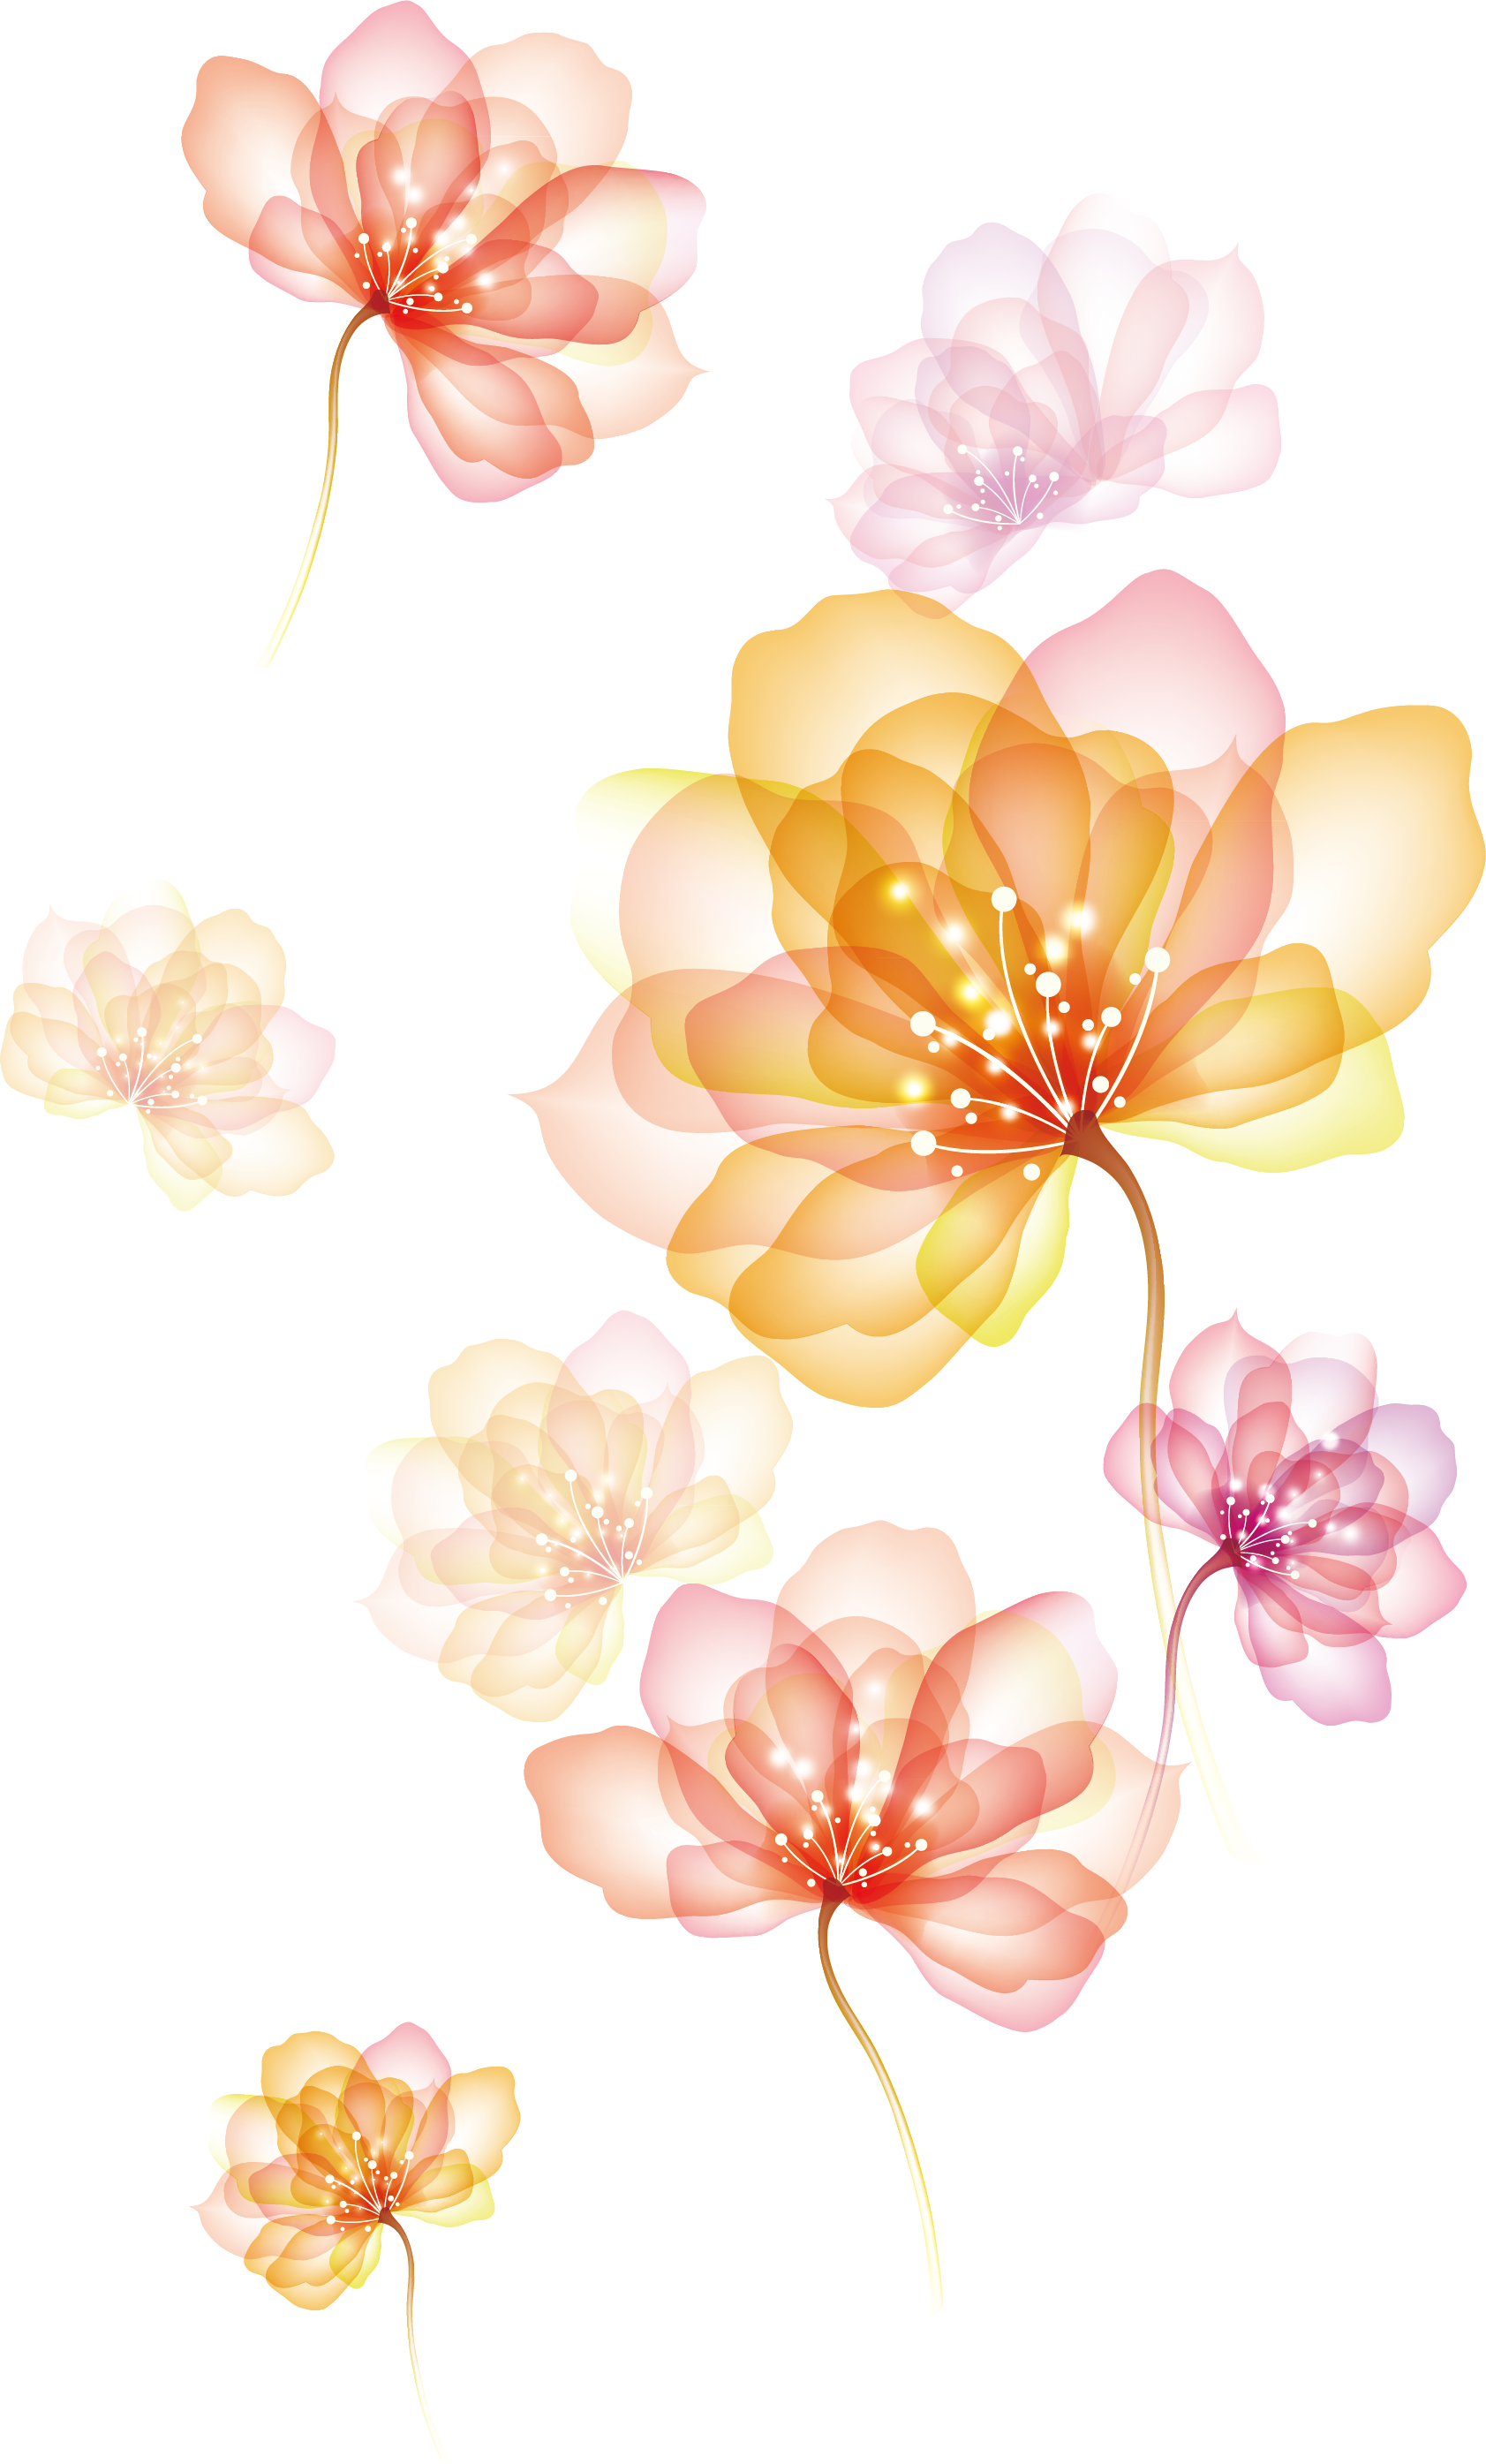 Of Spreading Flowers Effect Download Free Image PNG Image